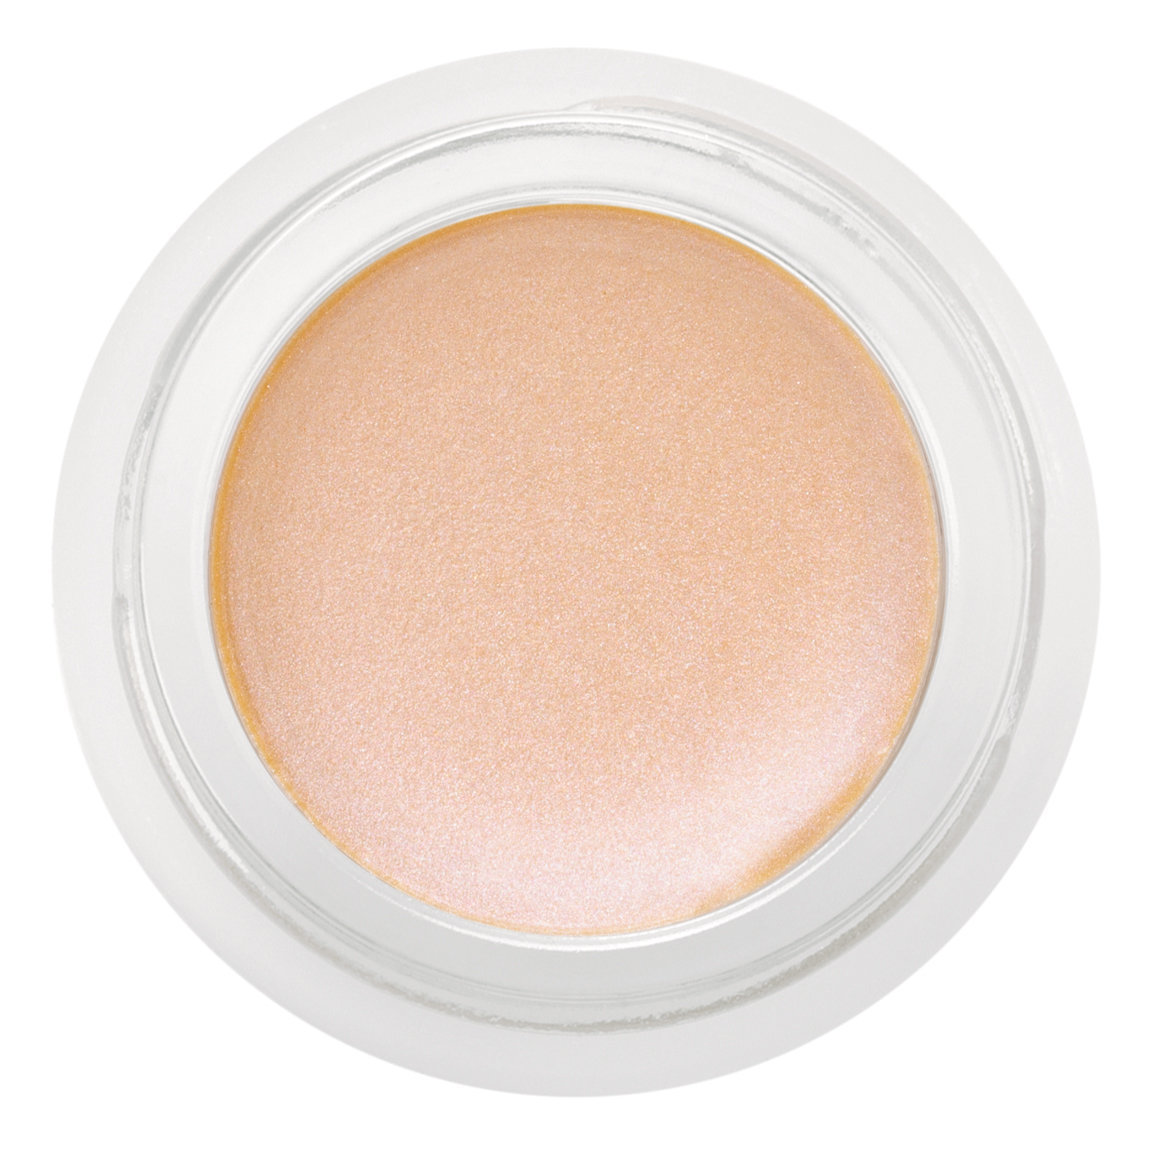 rms beauty Champagne Rosé Luminizer product swatch.